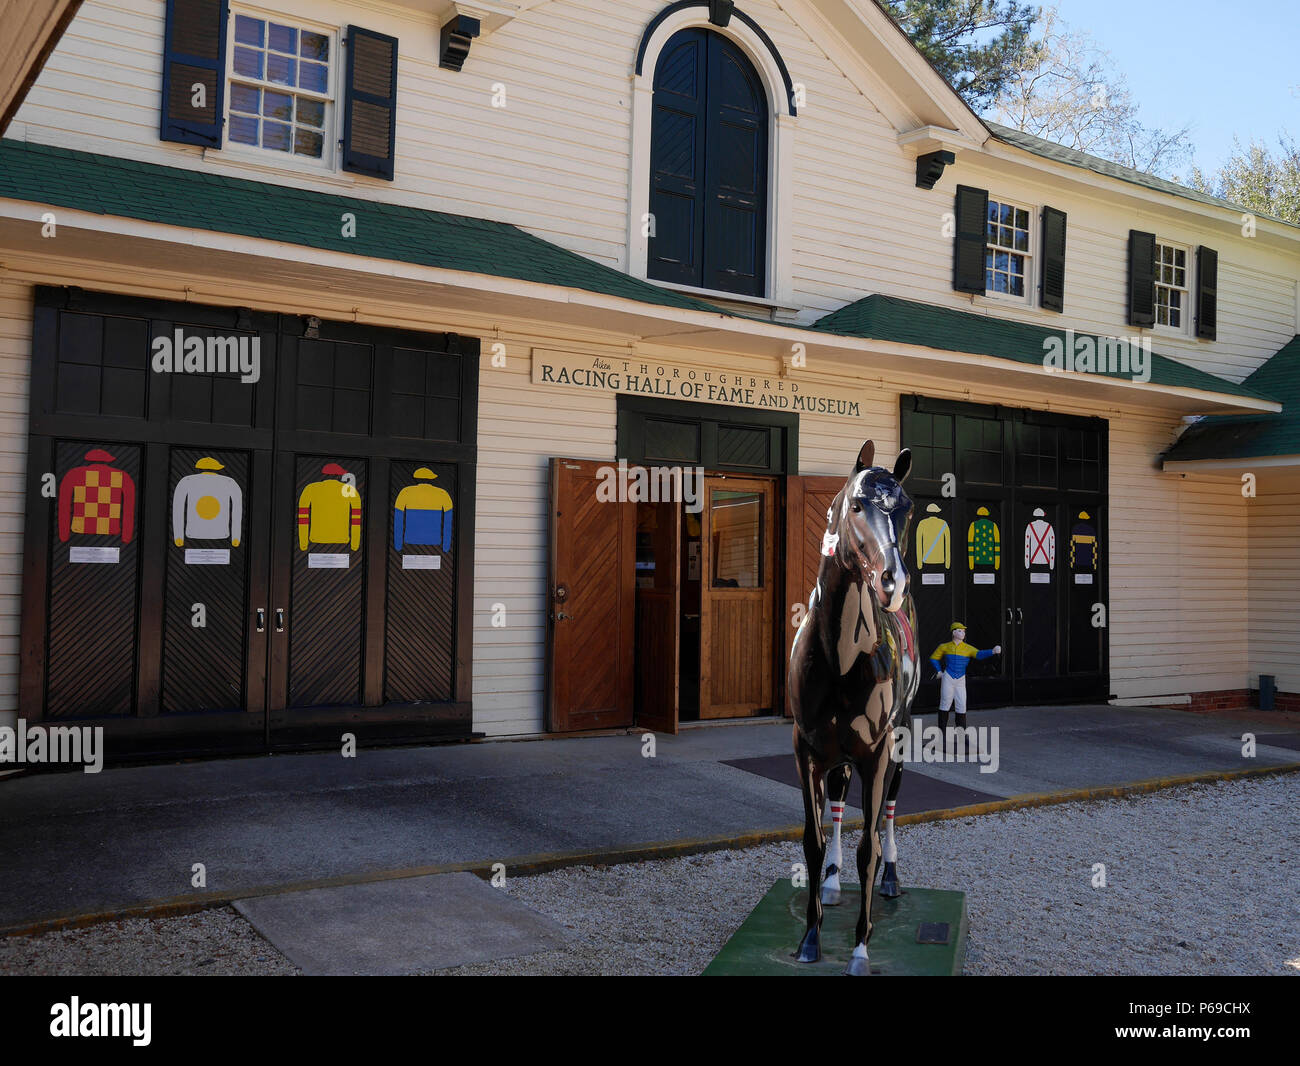 Aiken Thoroughbred Racing Hall of Fame and Museum, Aiken SC USA - Stock Image